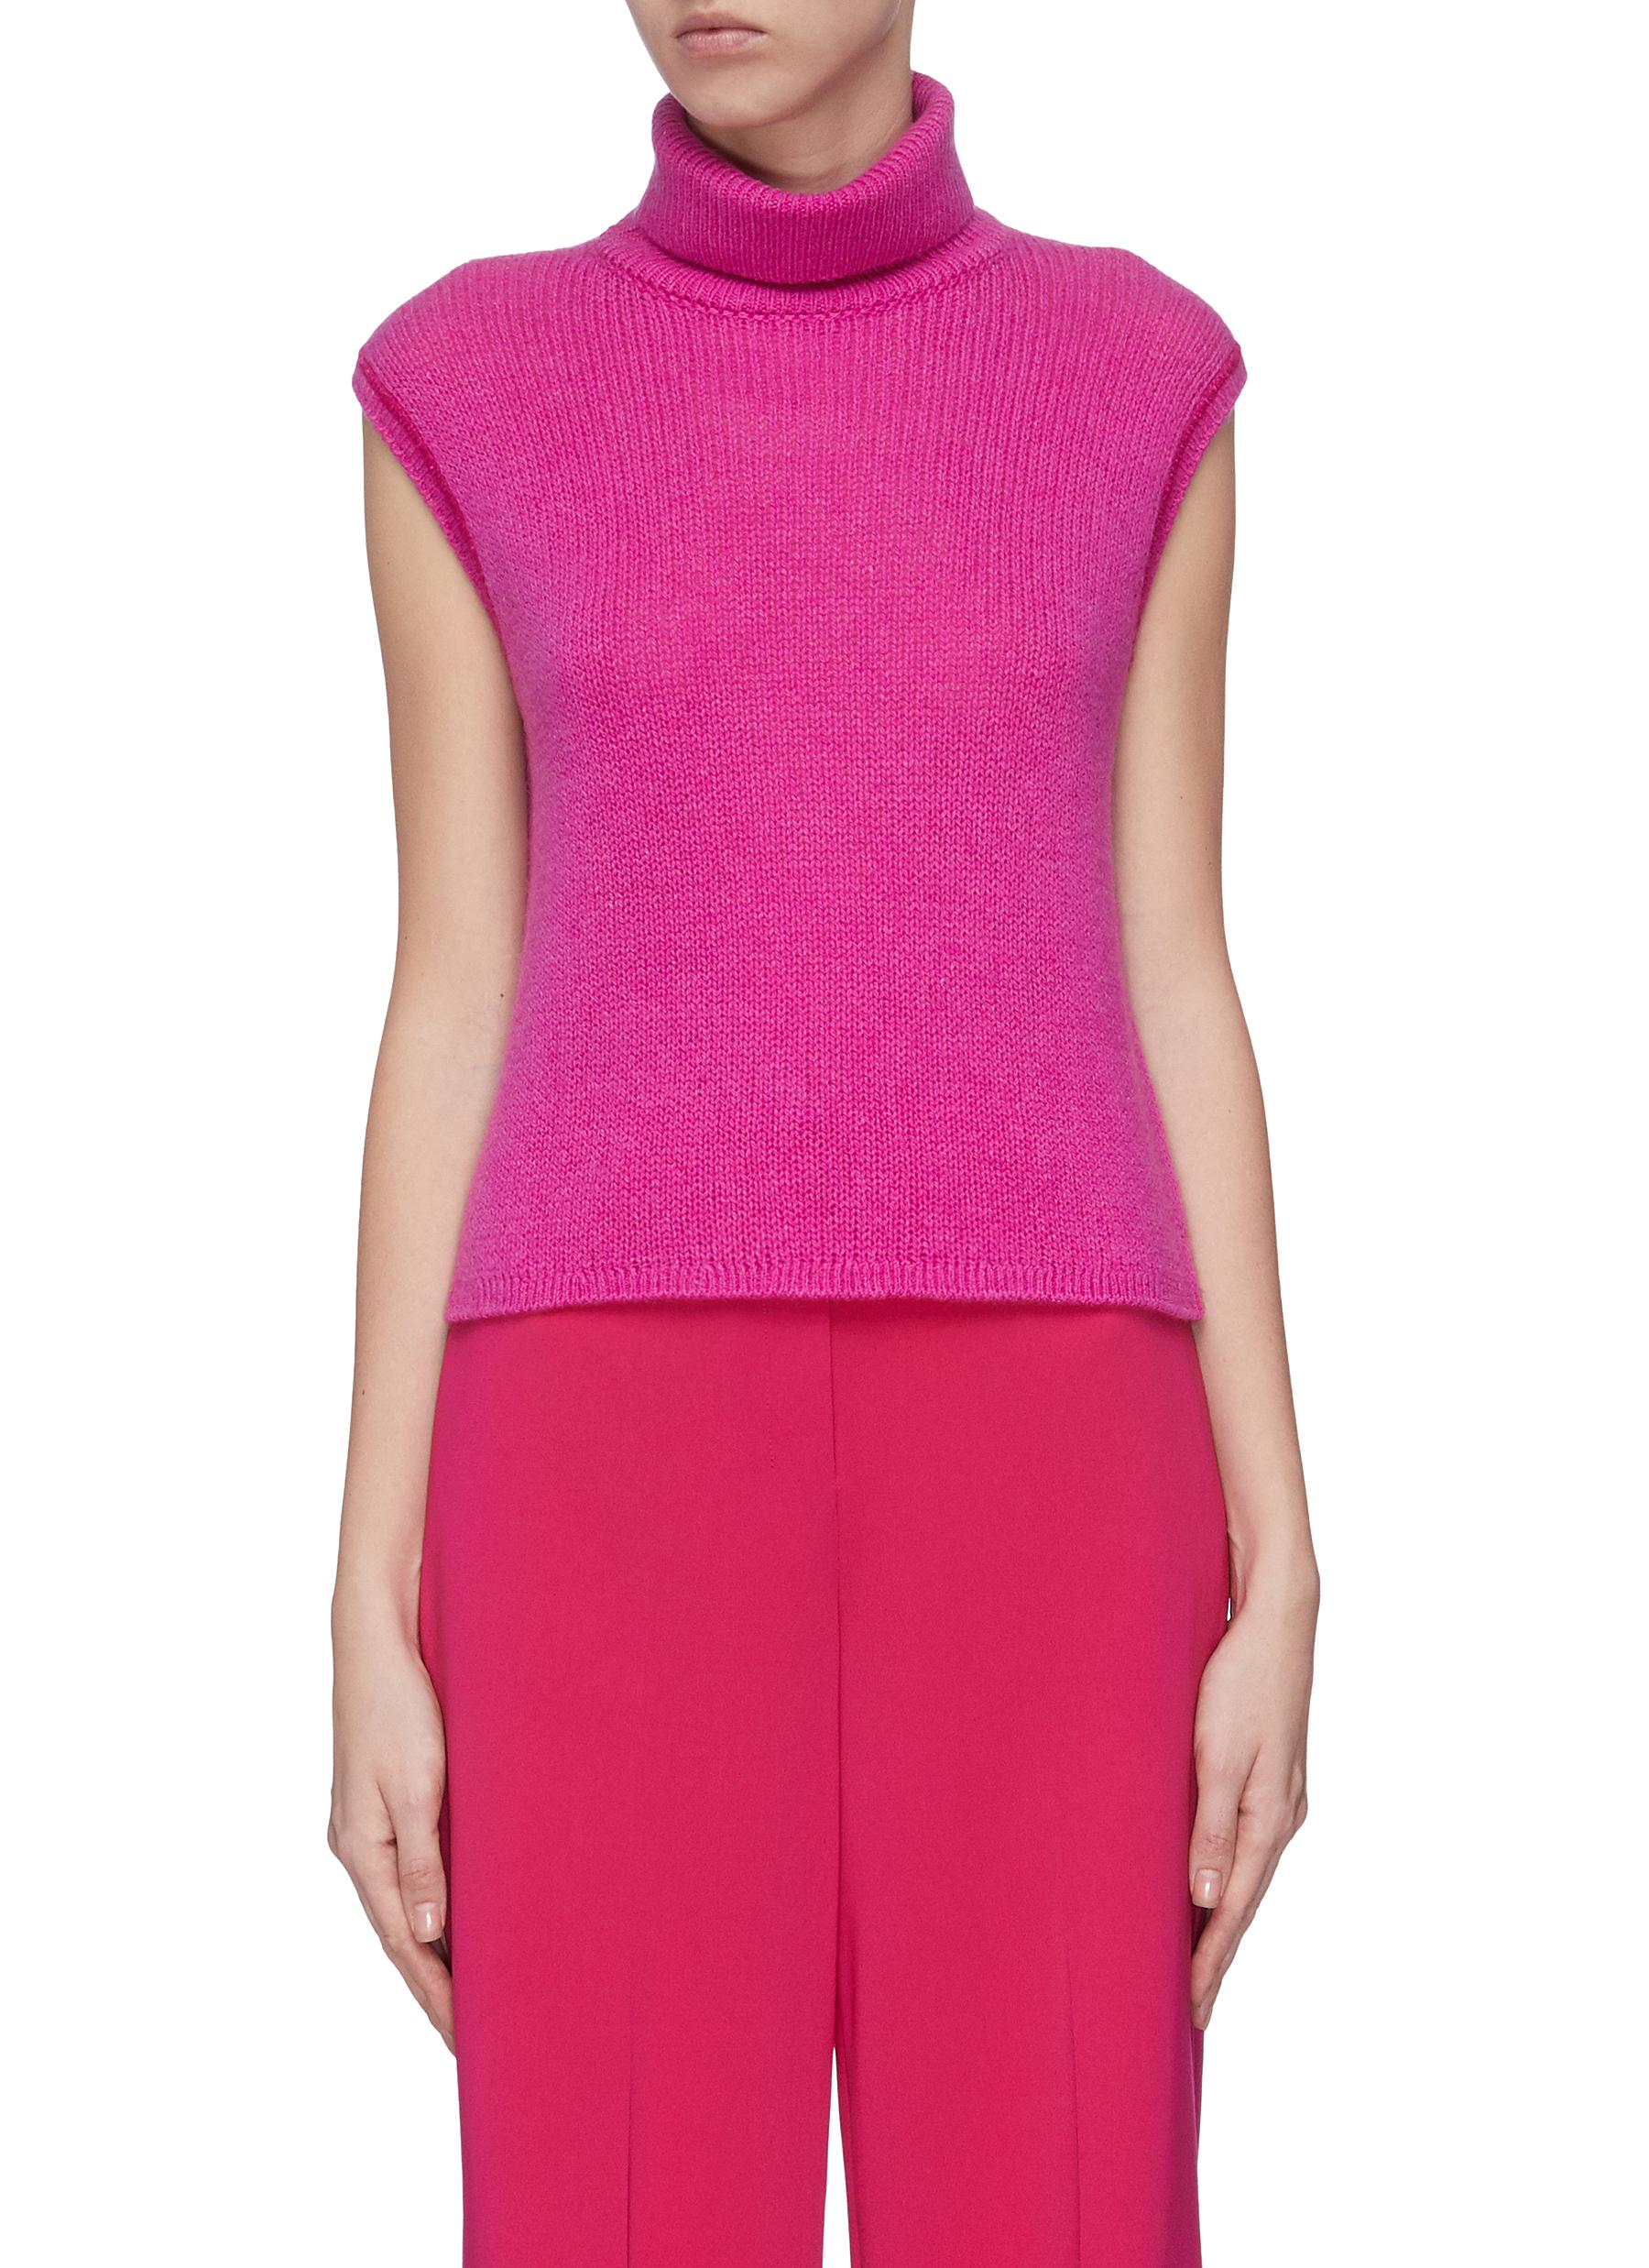 shop The Row 'Giselle' turtleneck sleeveless cashmere top online